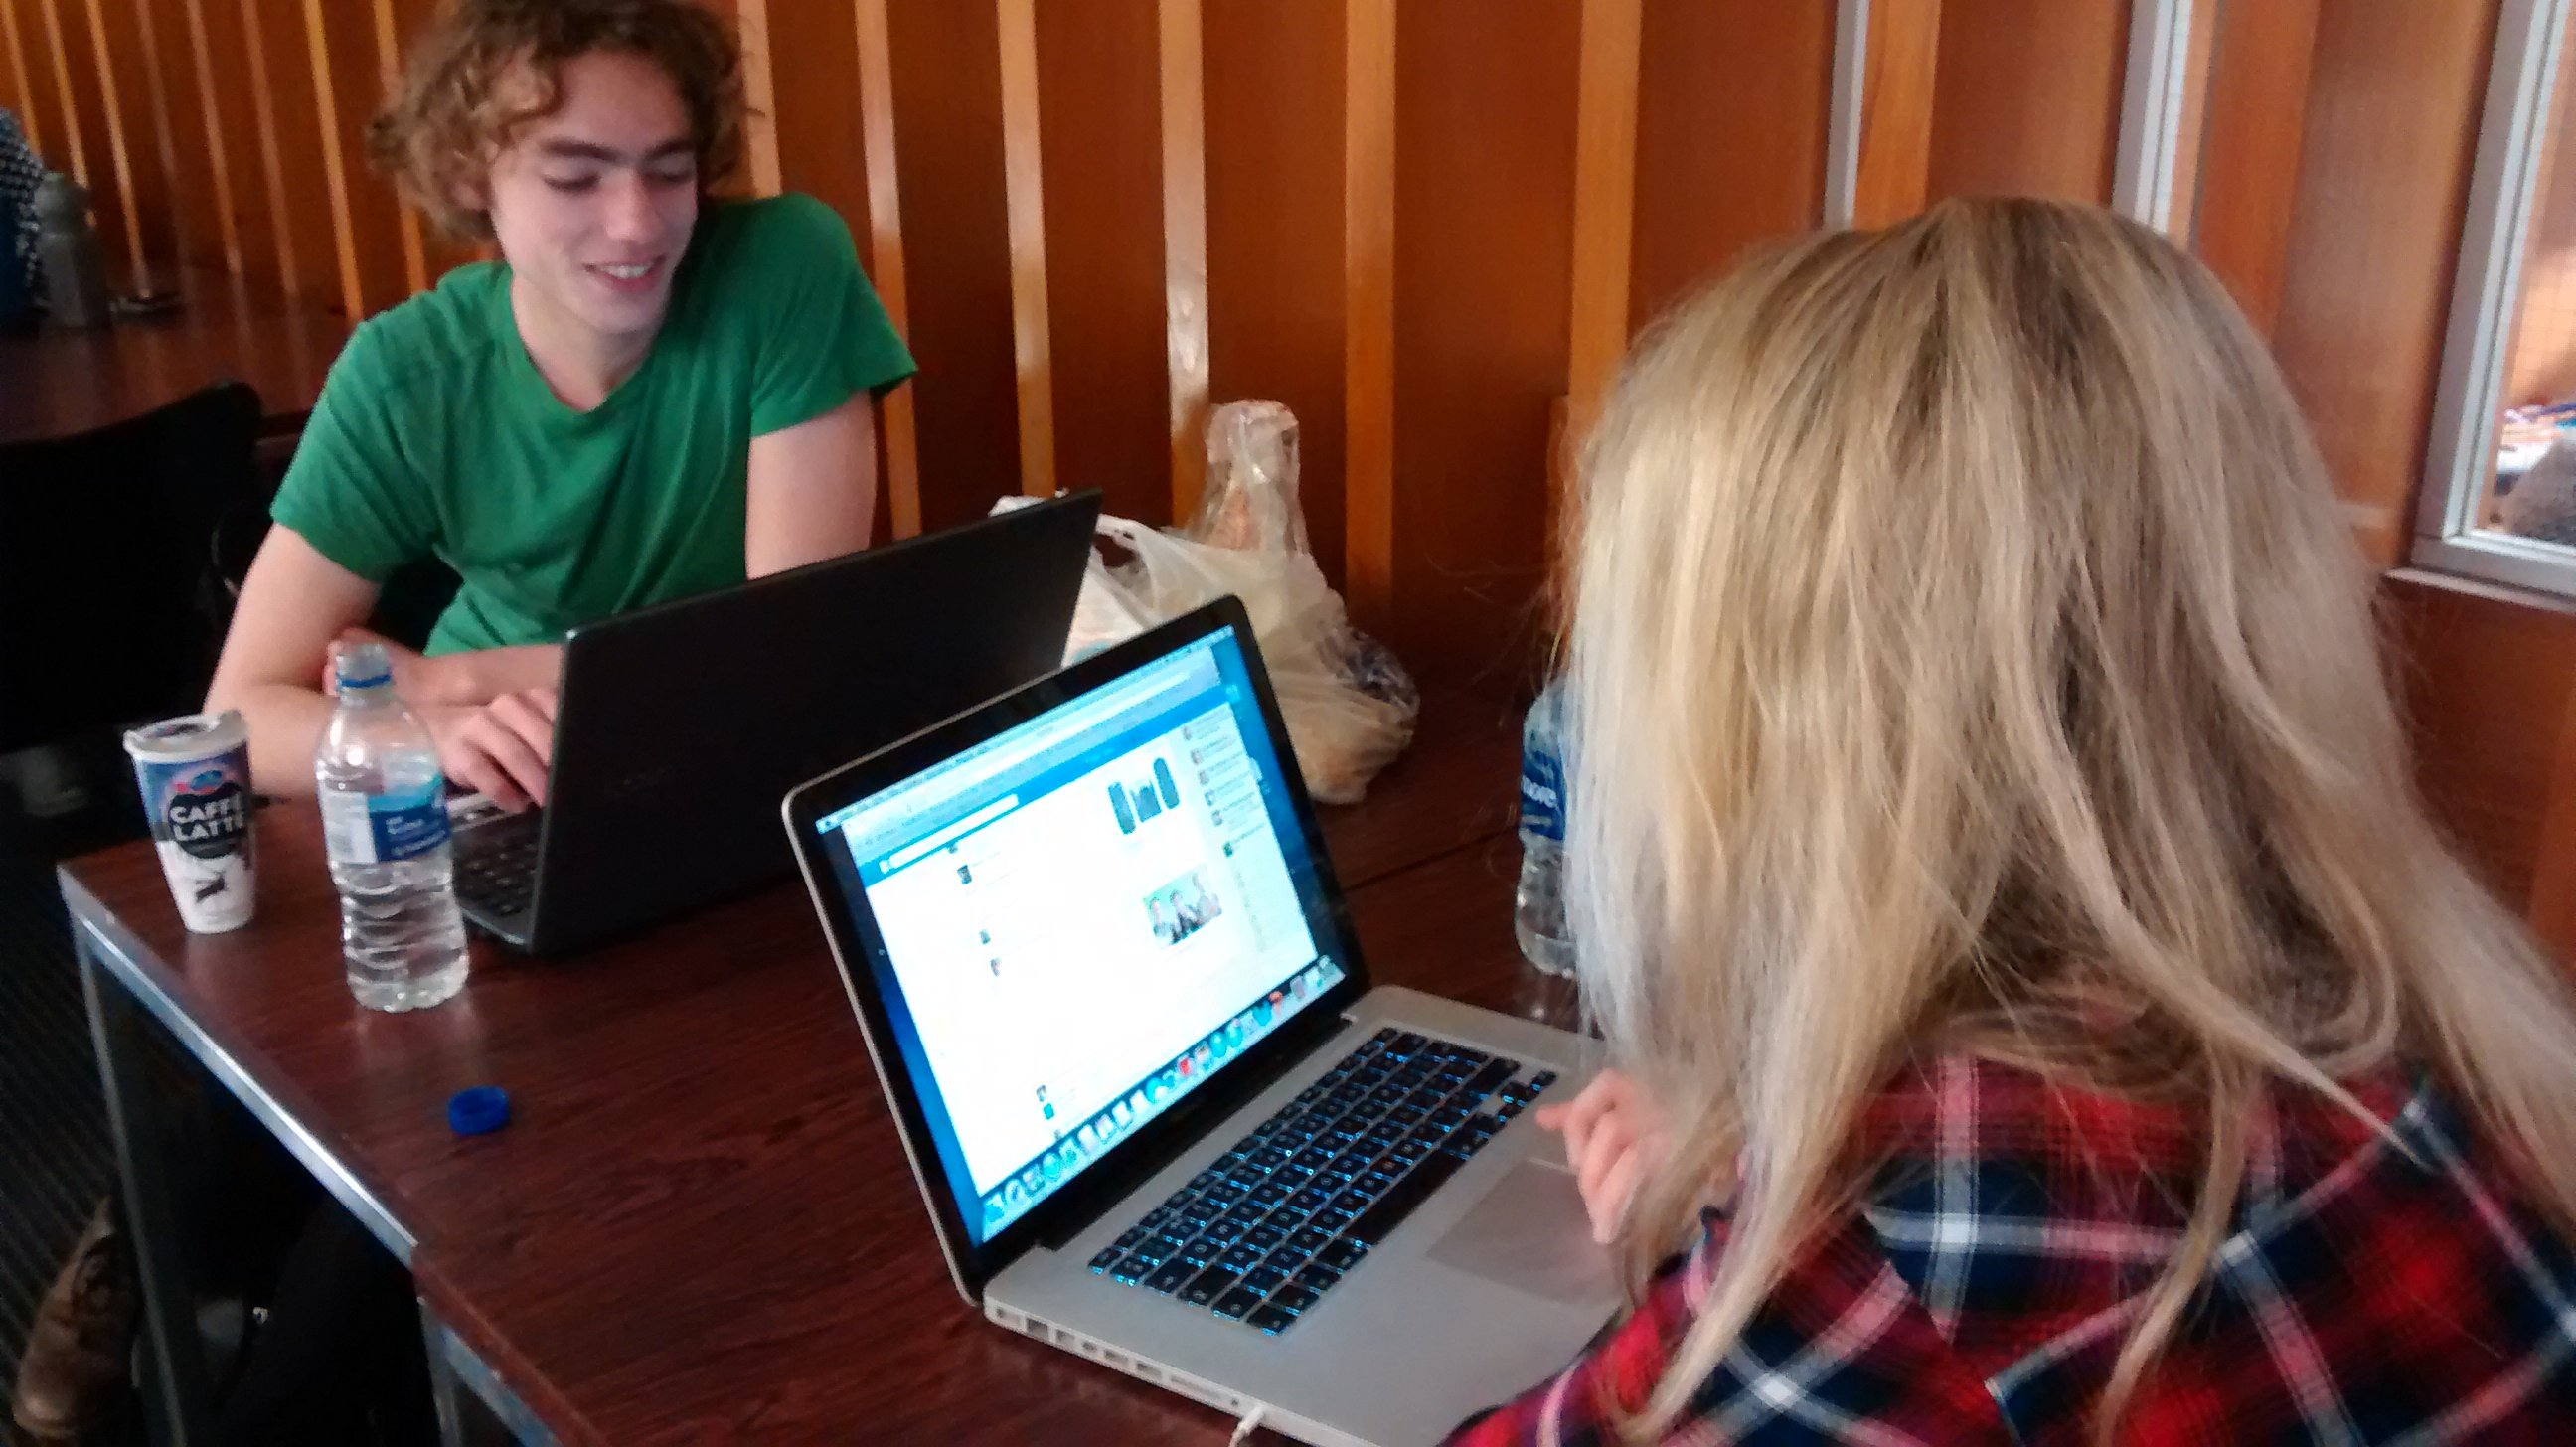 Kate and Nuri post a facebook status about being papped by the tab!